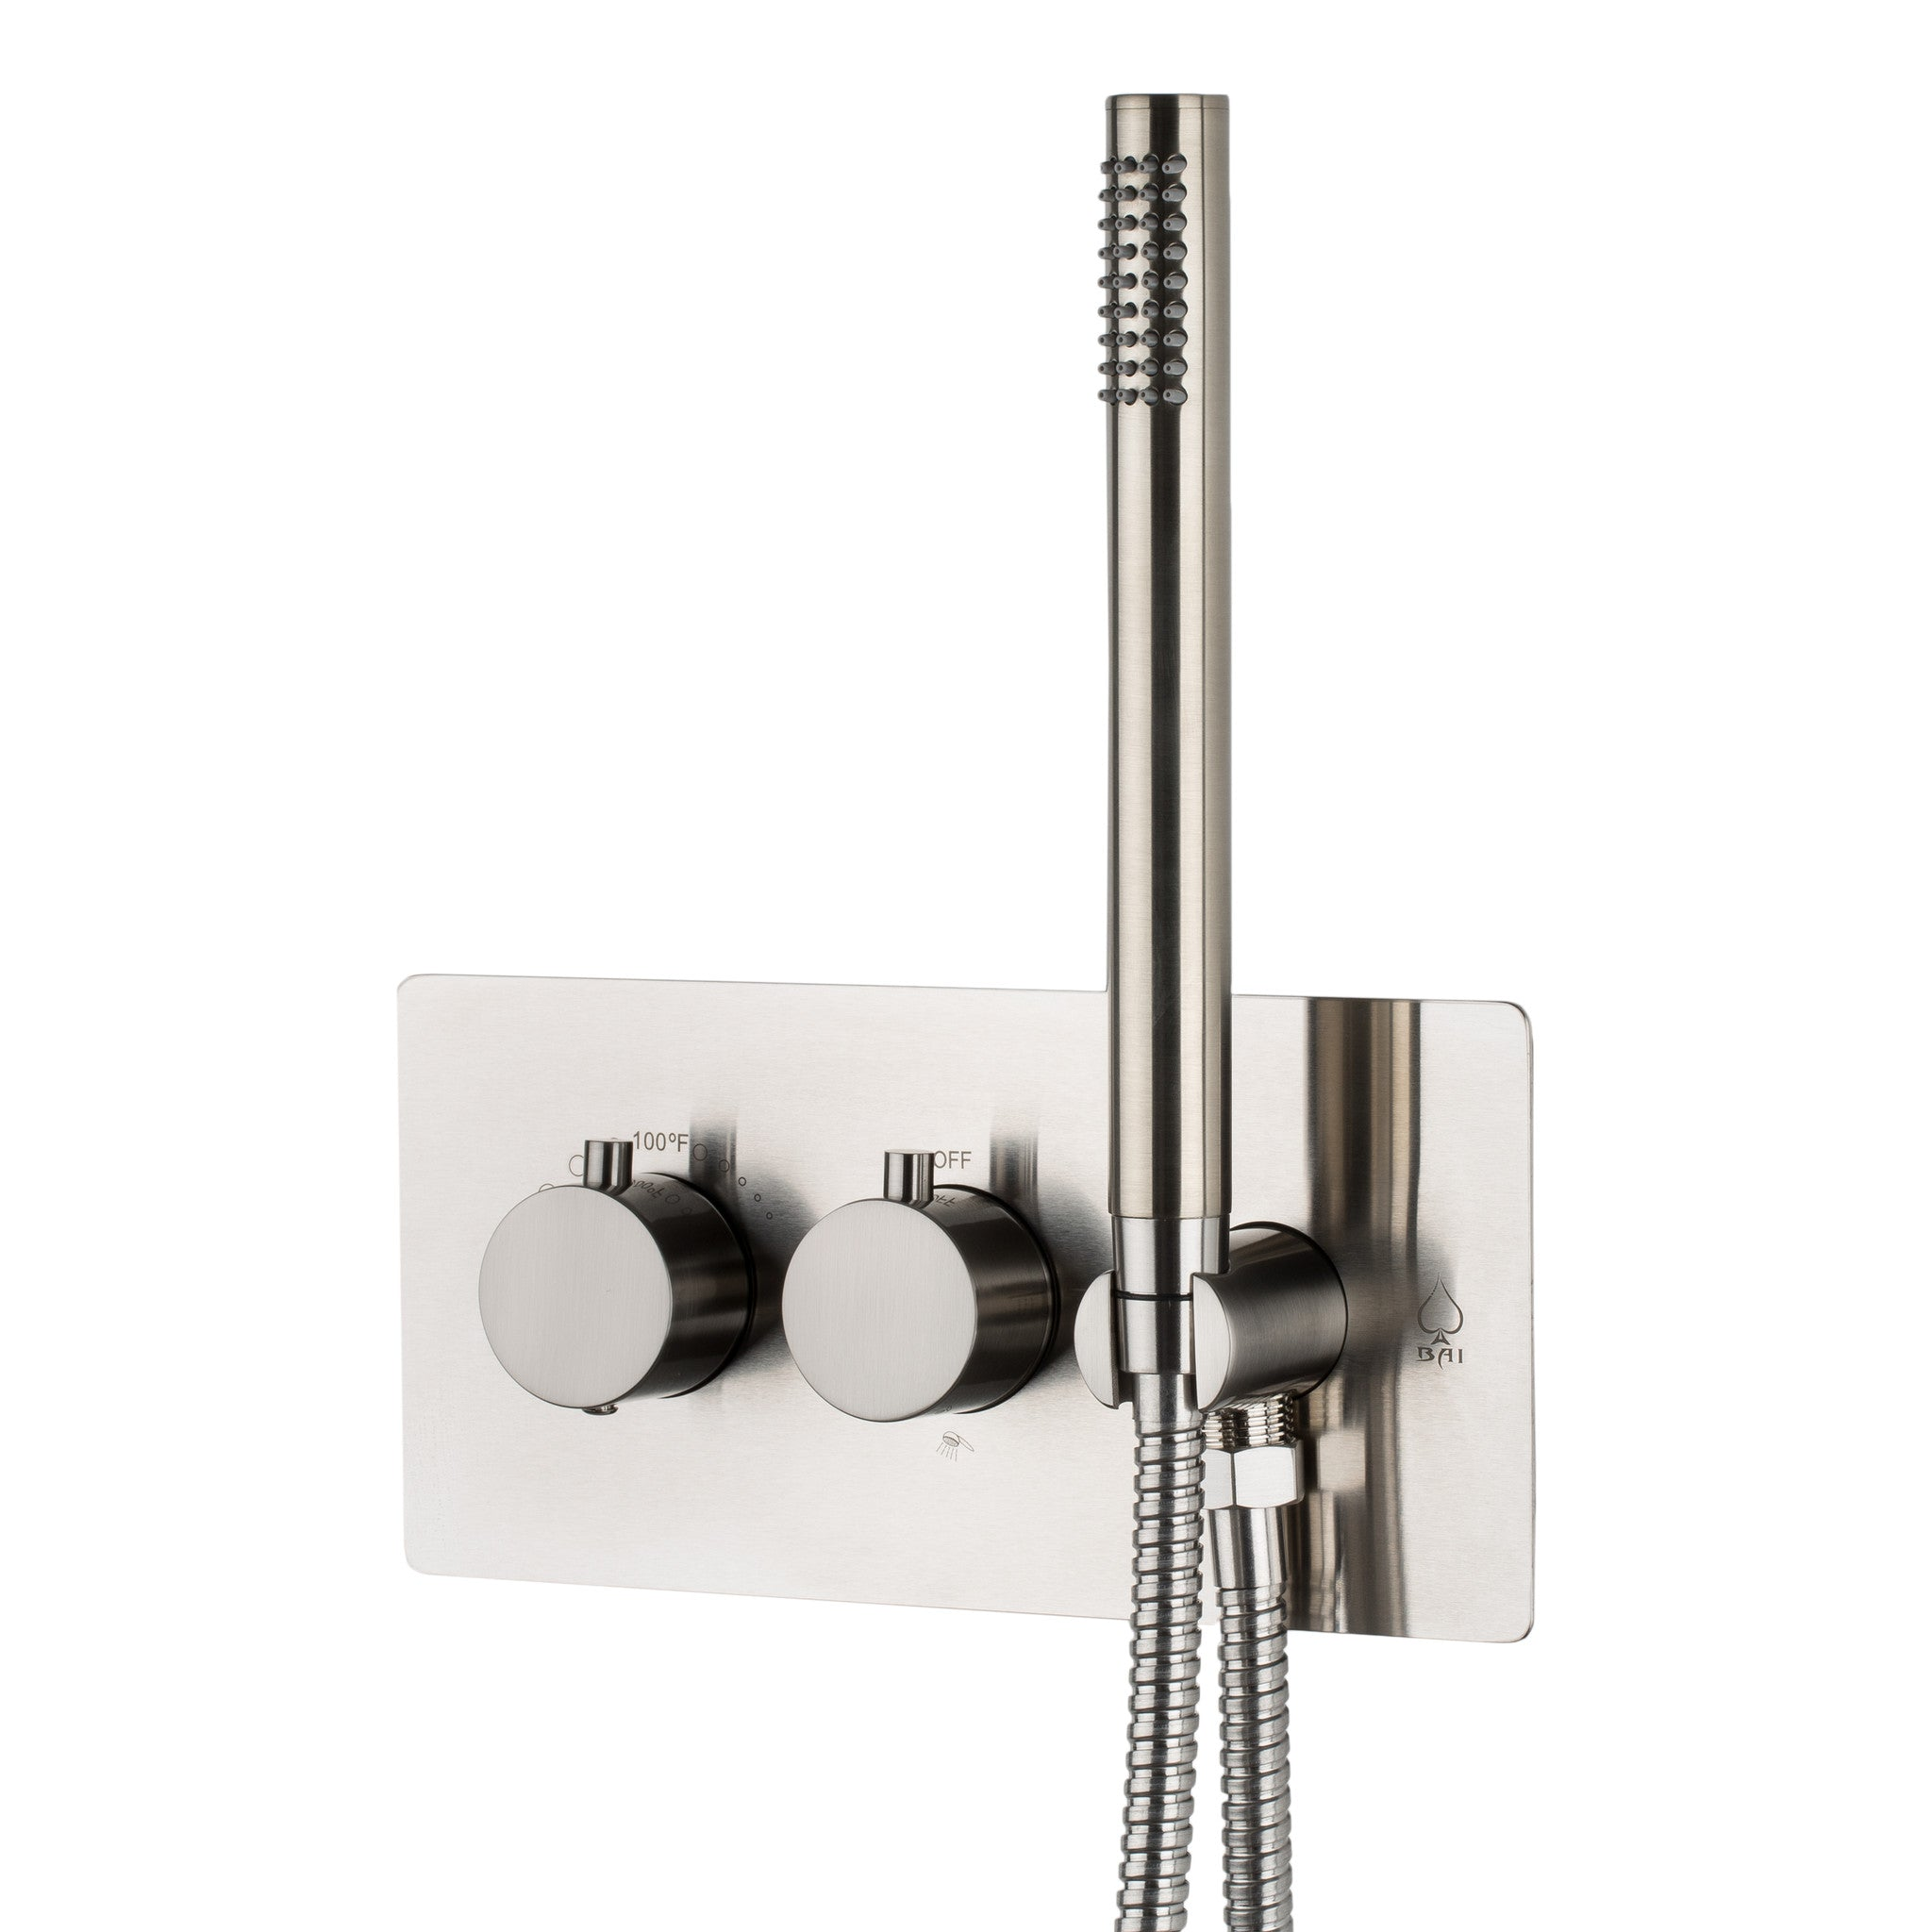 BAI 0132 Concealed Thermostatic Shower Mixer / Valve With Handheld Wand 2 3  Functions (Round Knobs, Brushed Nickel)